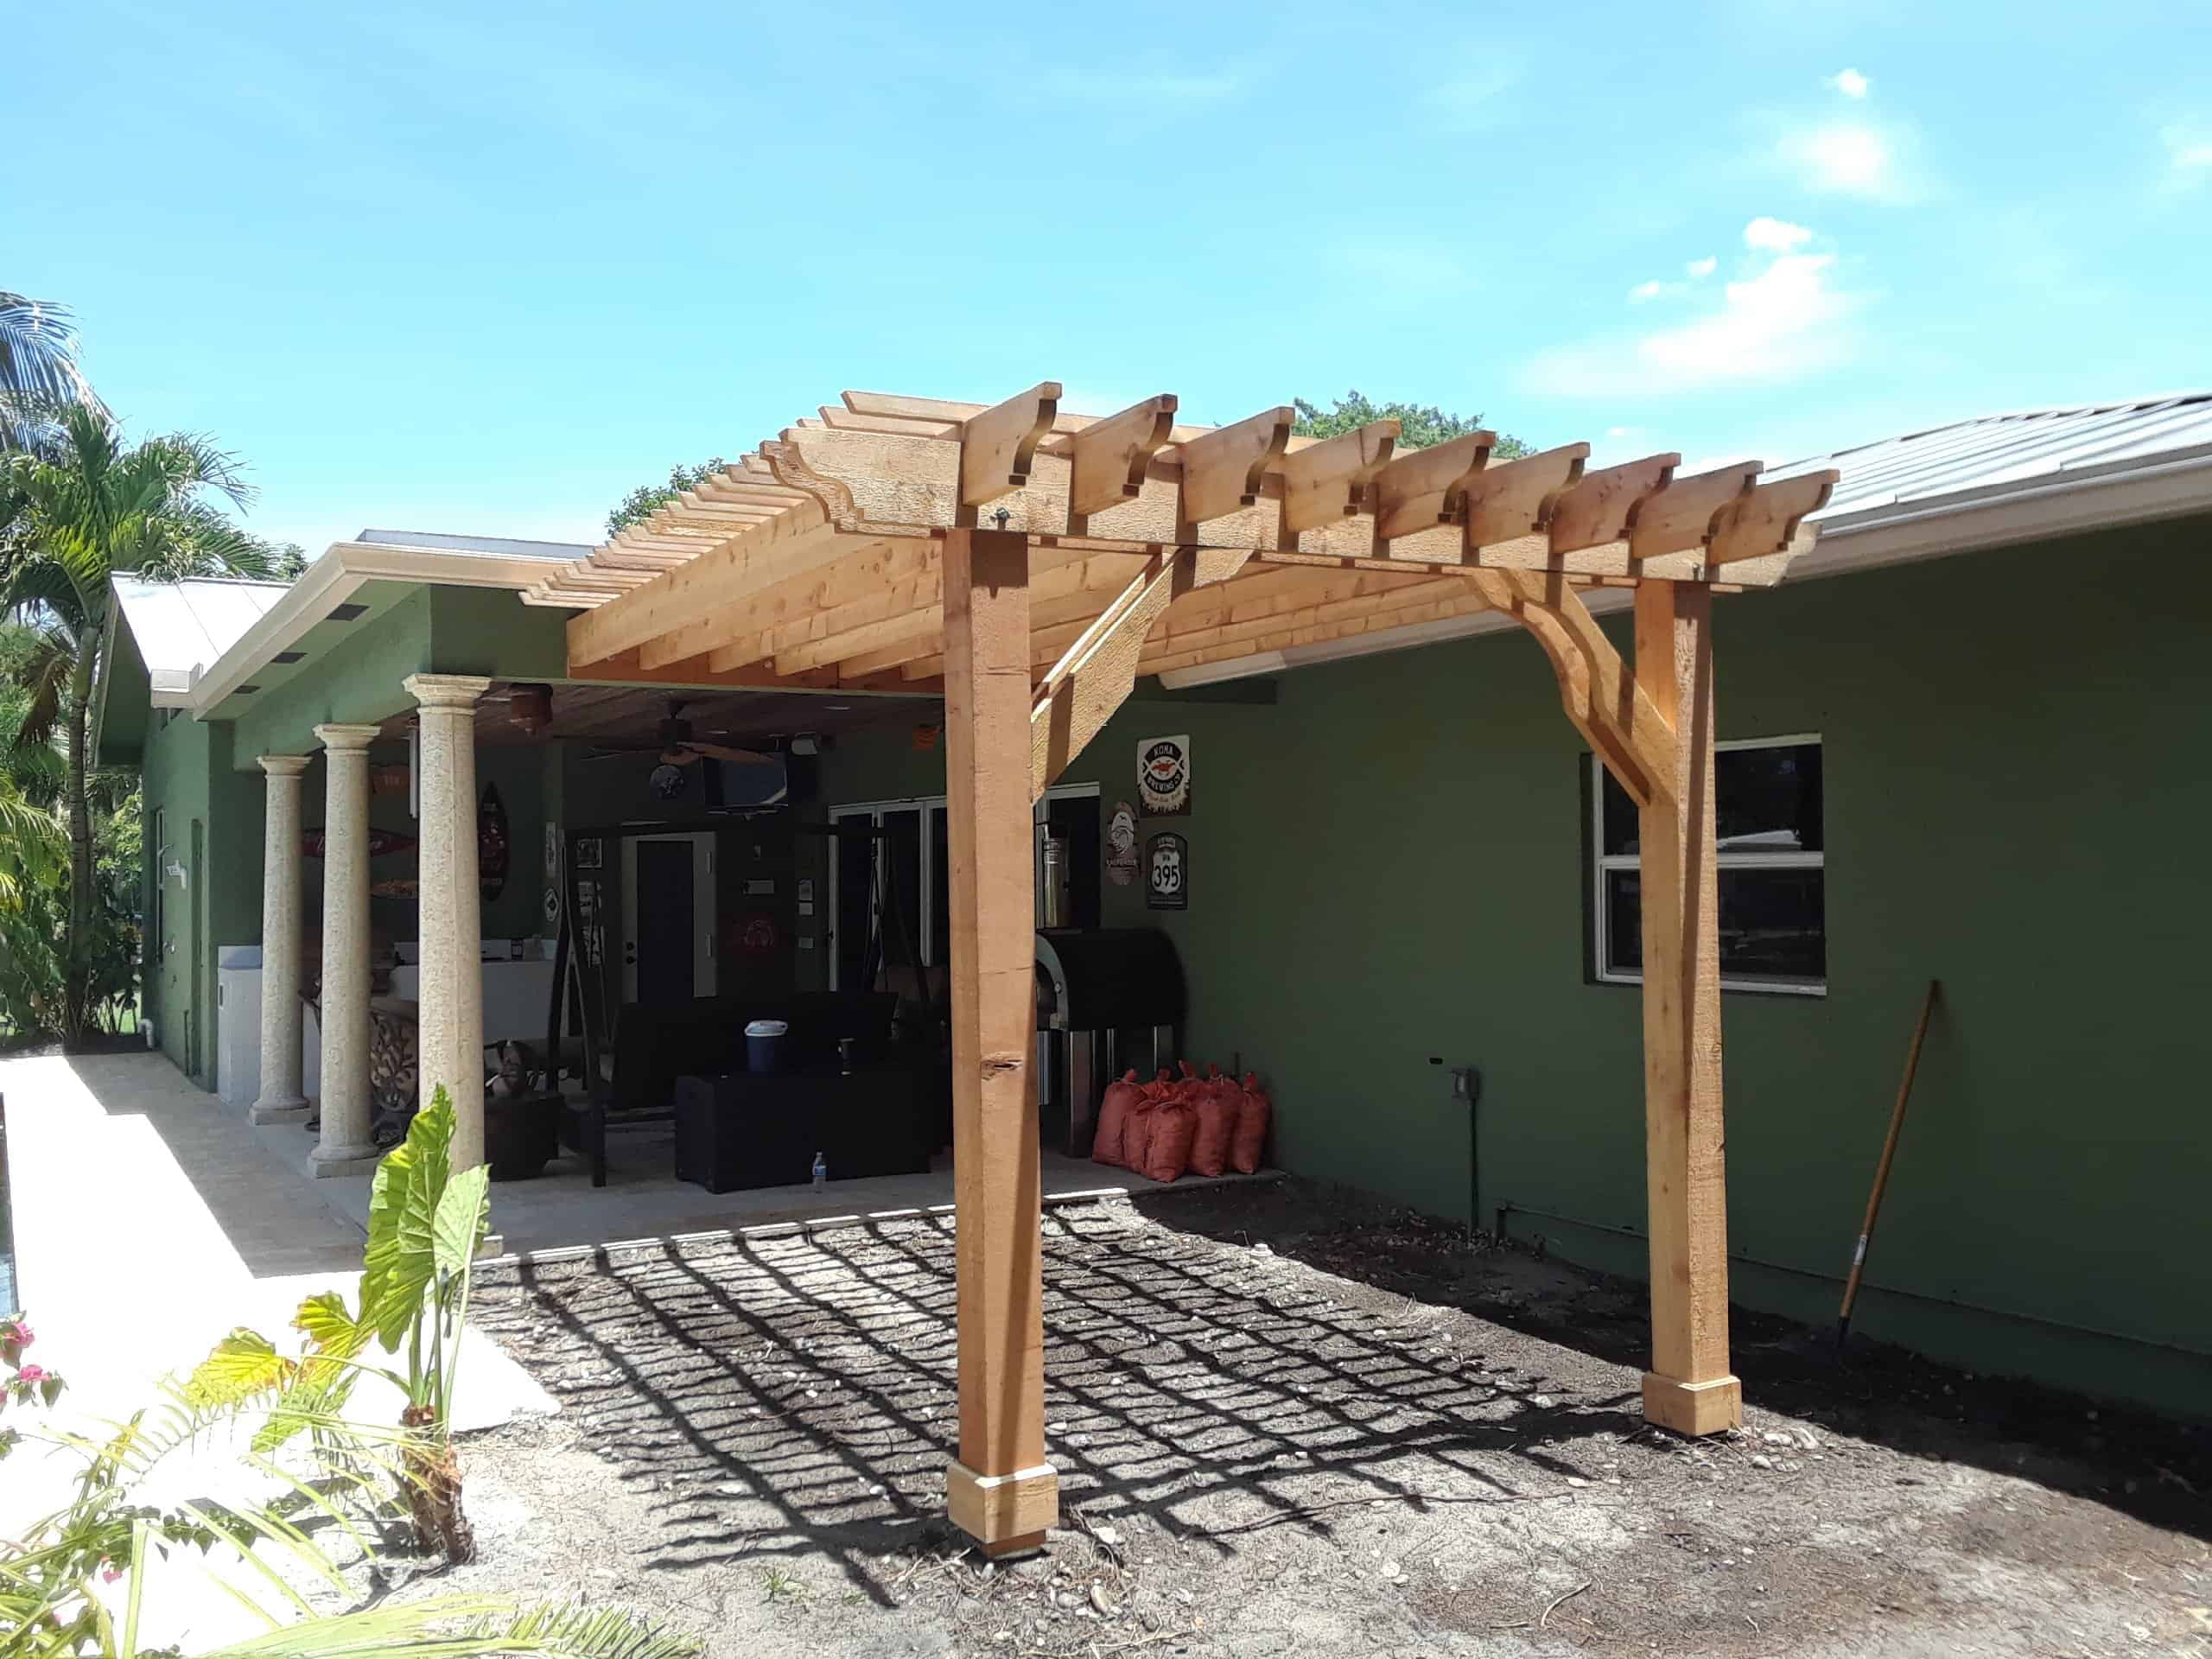 15x17 Pergola Kit Order A Big Kahuna 15x17 Wood Pergola